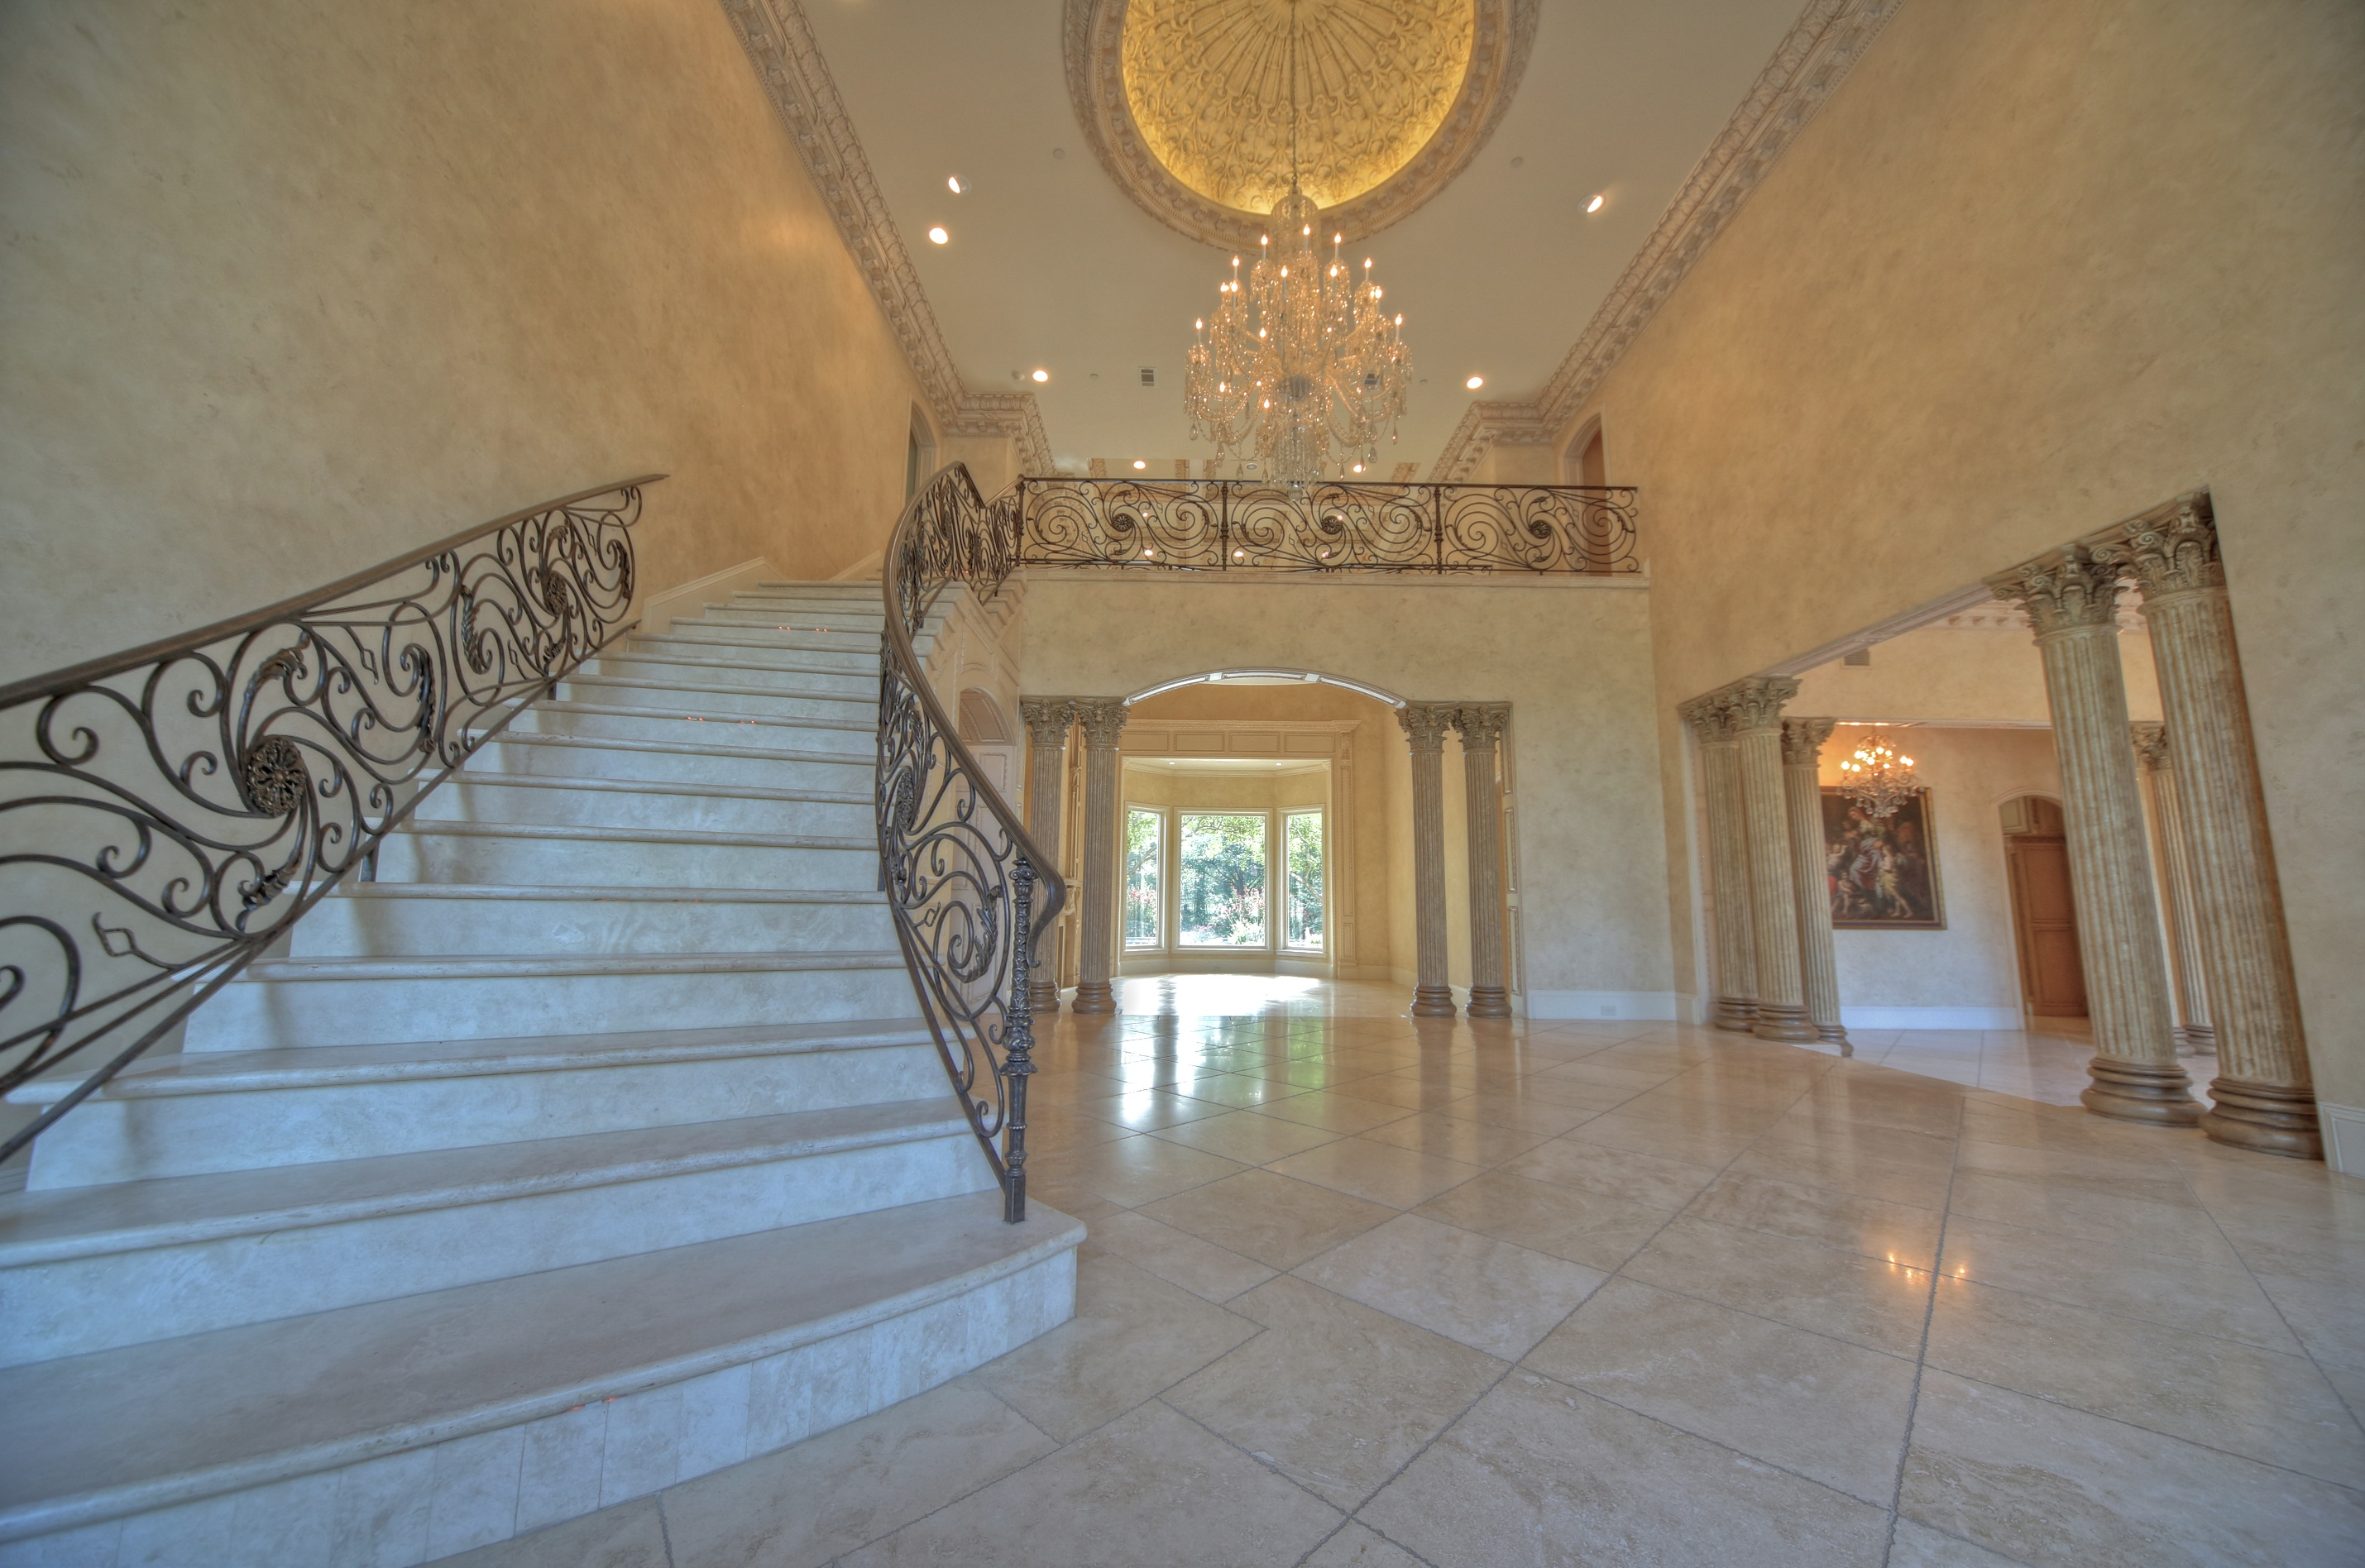 Grand Foyer Images : J p king auction company to willow bend place estate